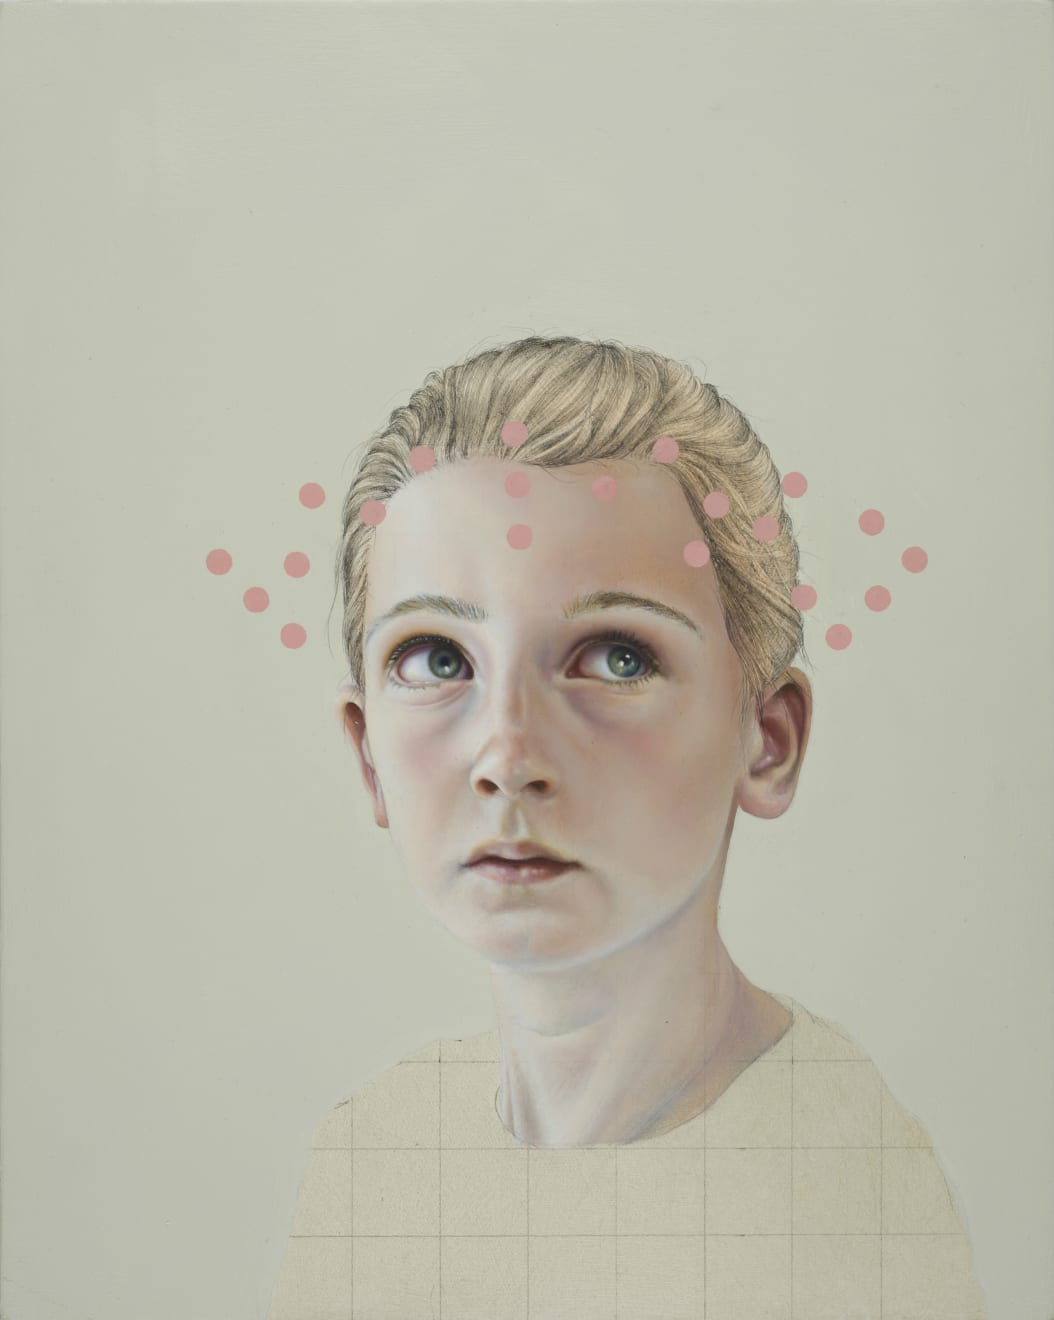 Pippa Young, Another form of reality